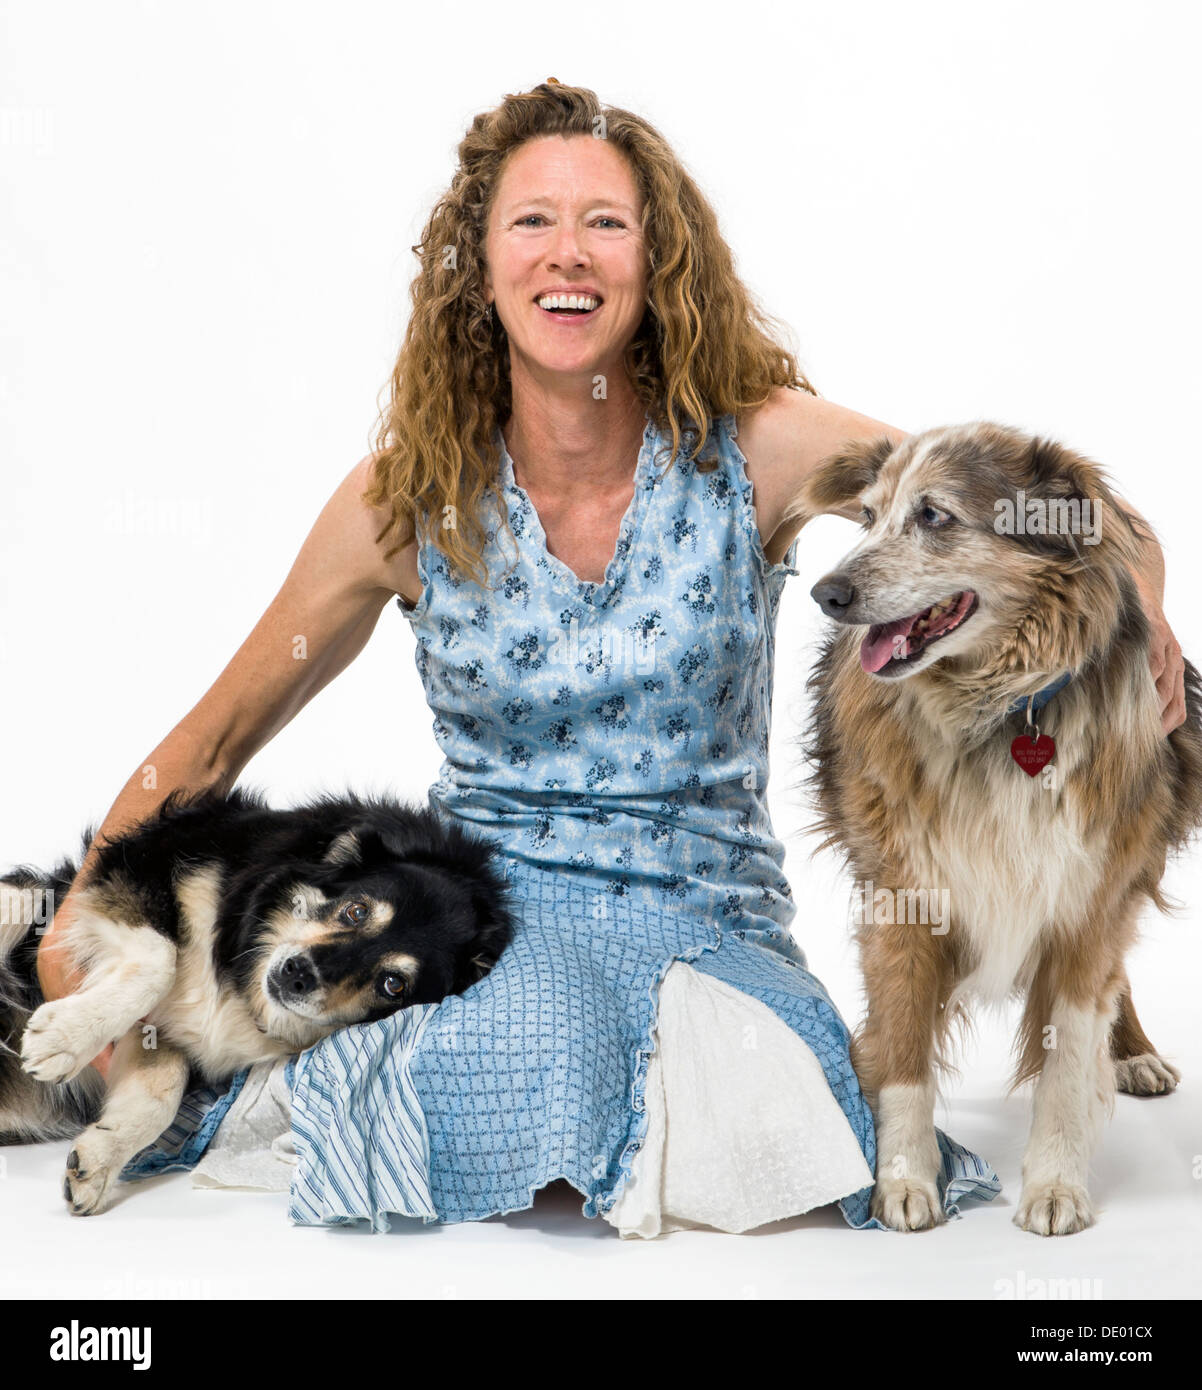 Studio photograph of attractive woman with two pet dogs, a Border Collie mix and Australian Shepherd mix - Stock Image